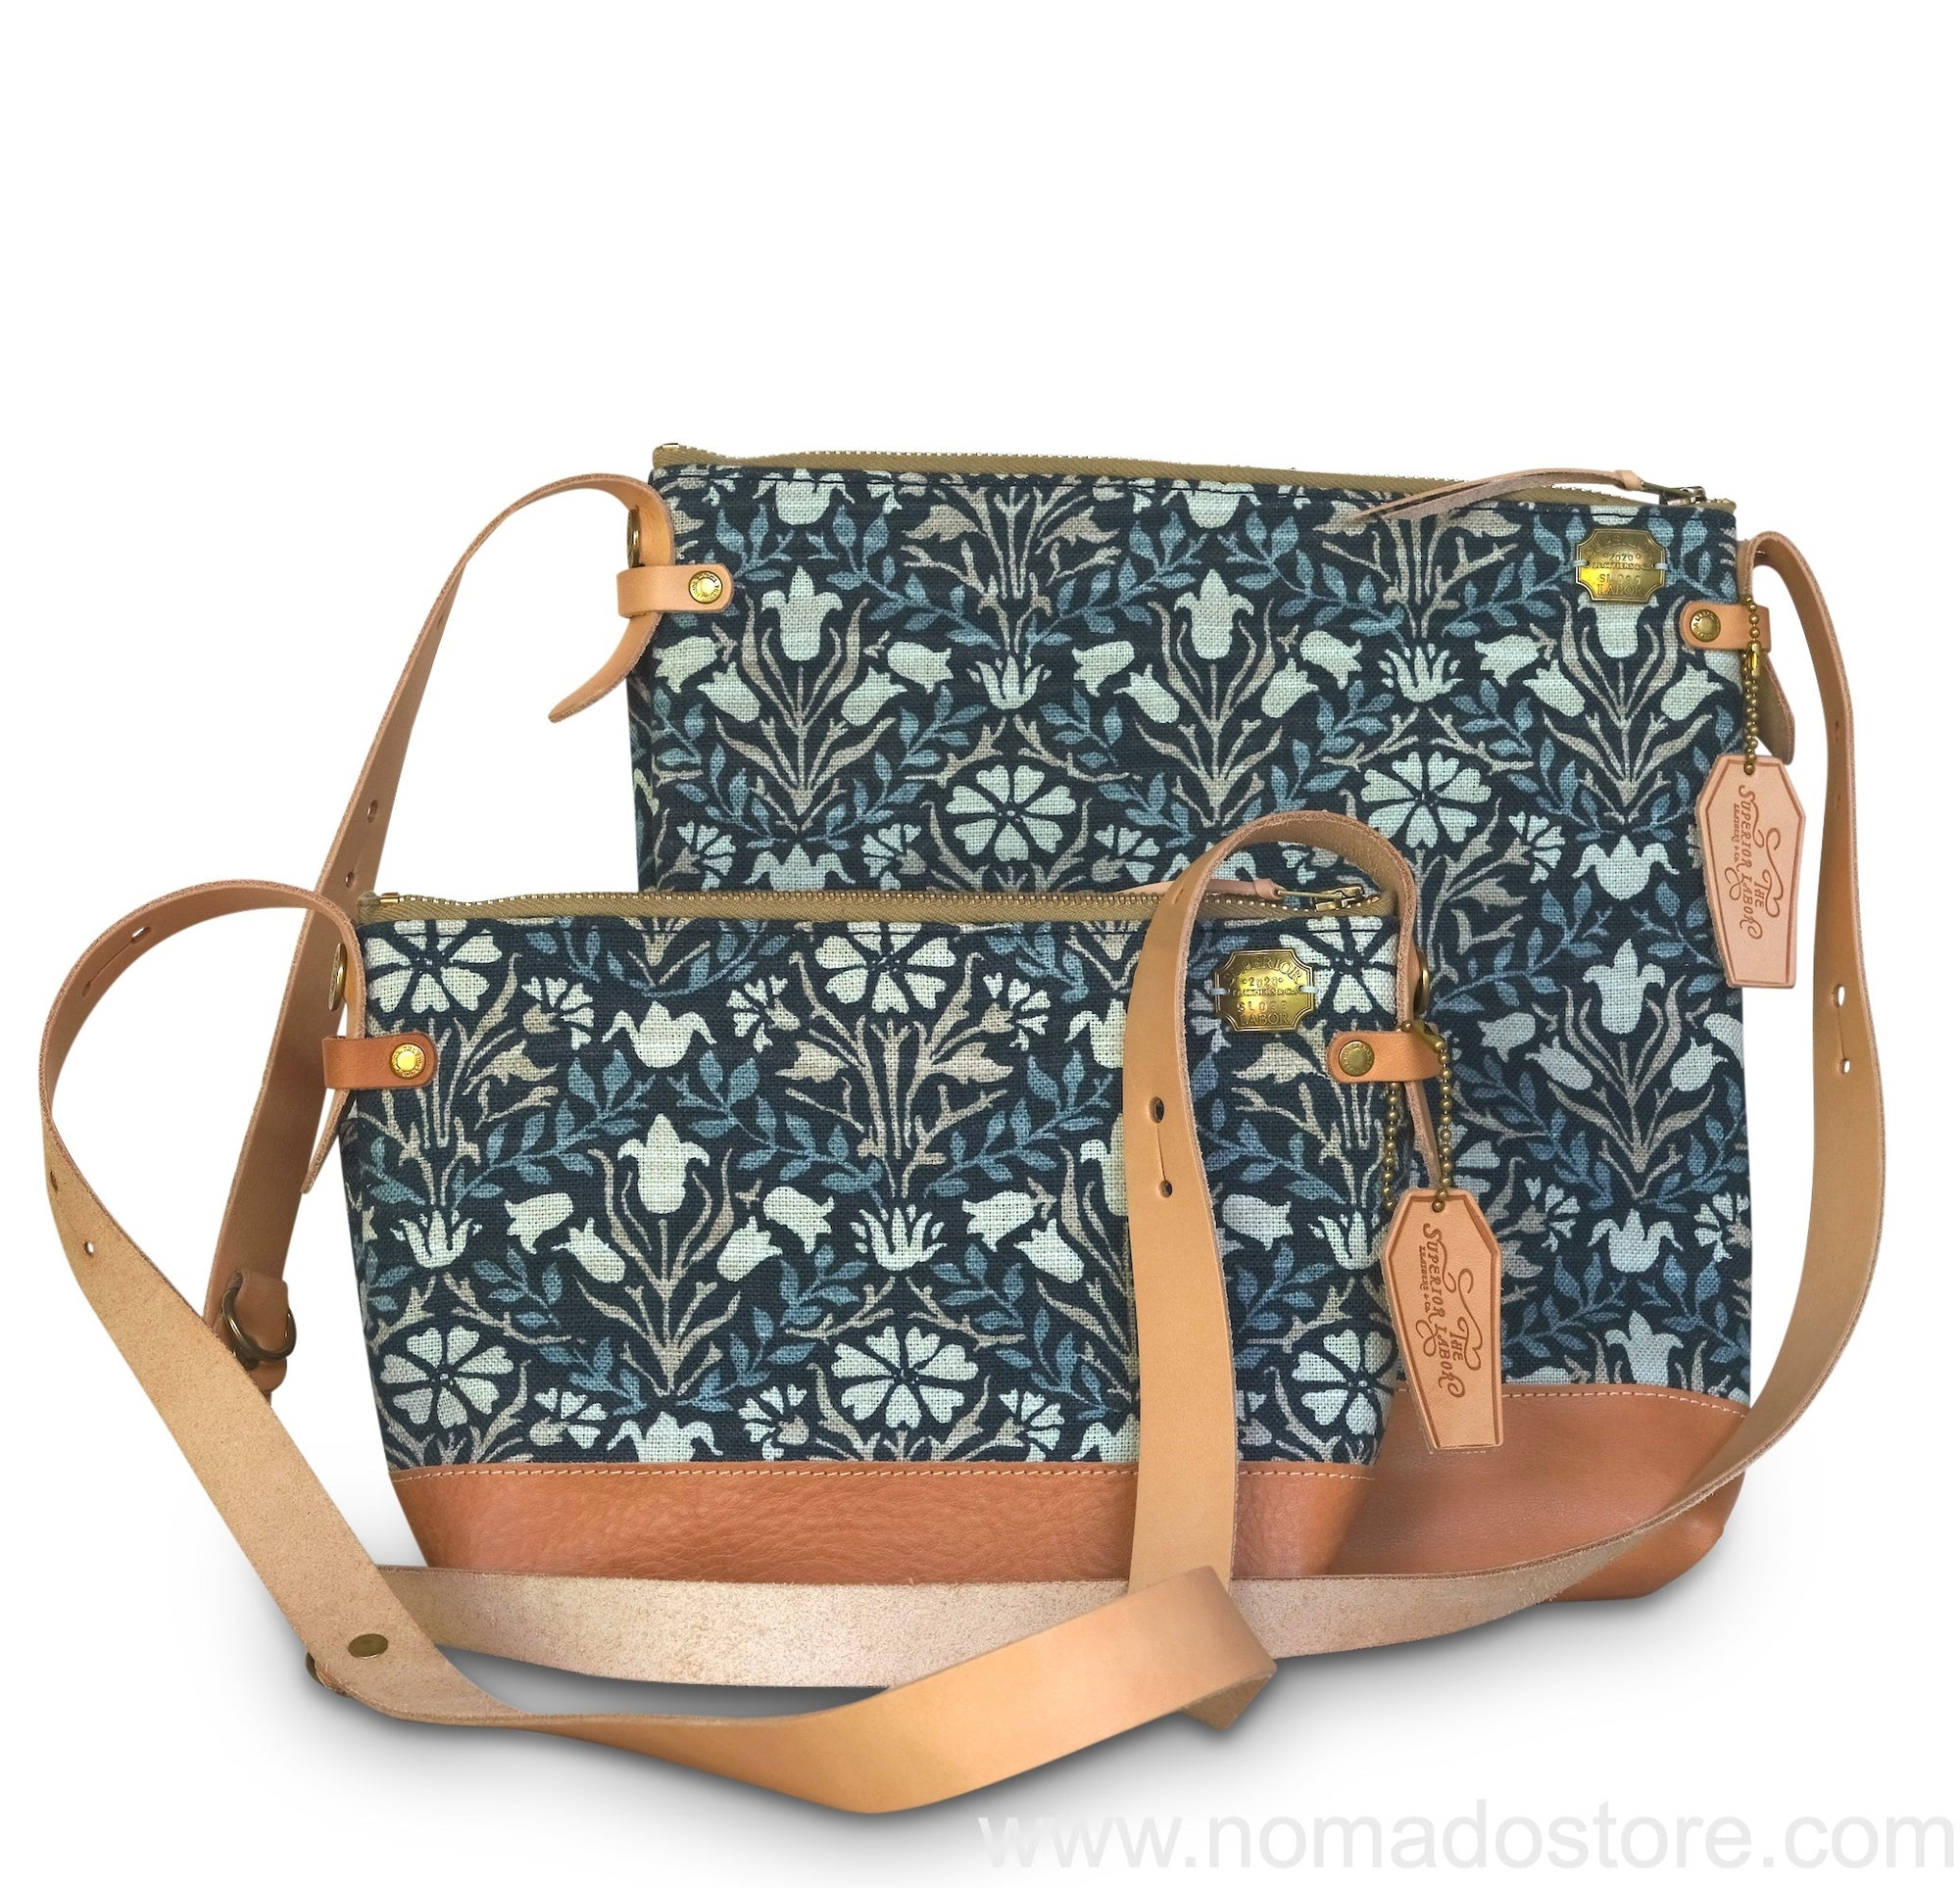 The Superior Labor William Morris Shoulder Bag Bellflowers (2 sizes)